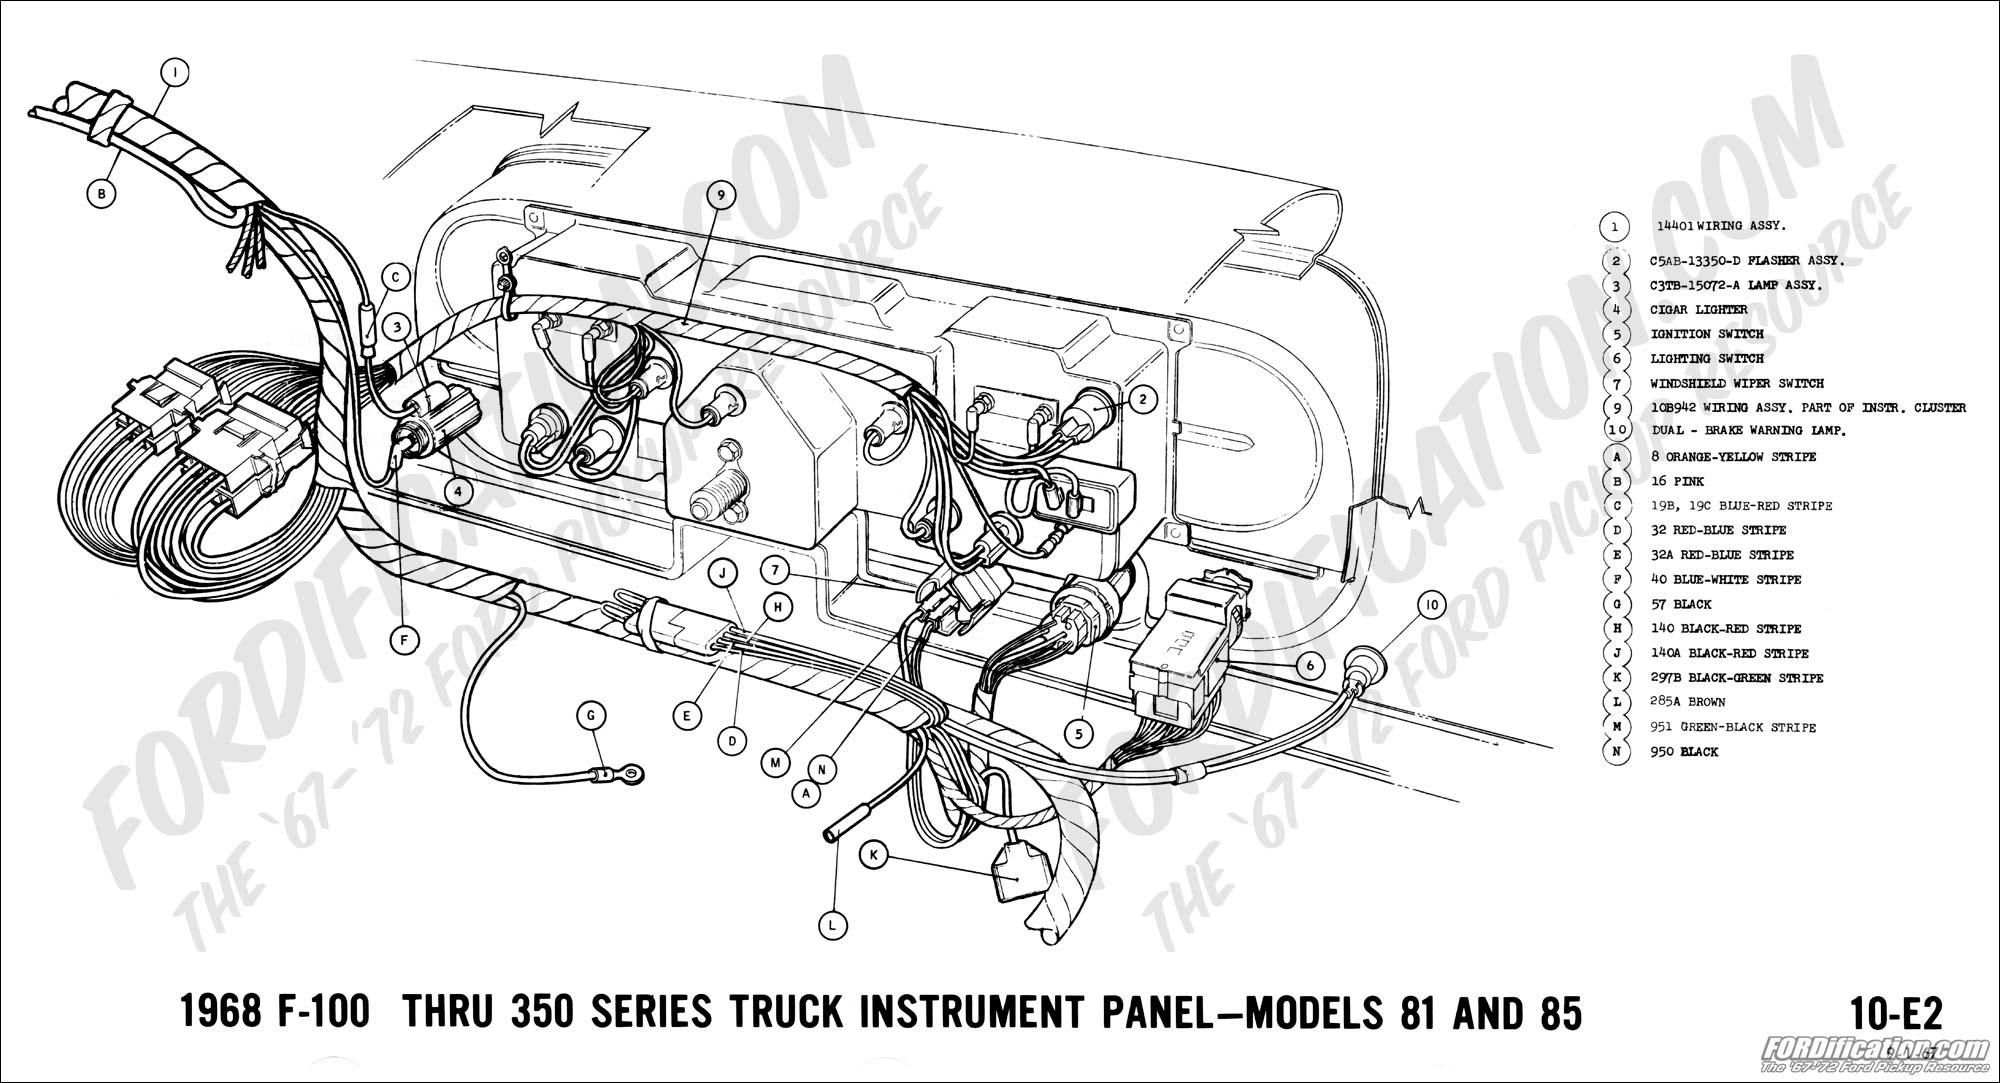 Ford Truck Technical Drawings And Schematics Section H Wiring Diagram Schematic With Switch Manual Diagrams Legend 1968 F 100 Thru 350 Instrument Panel